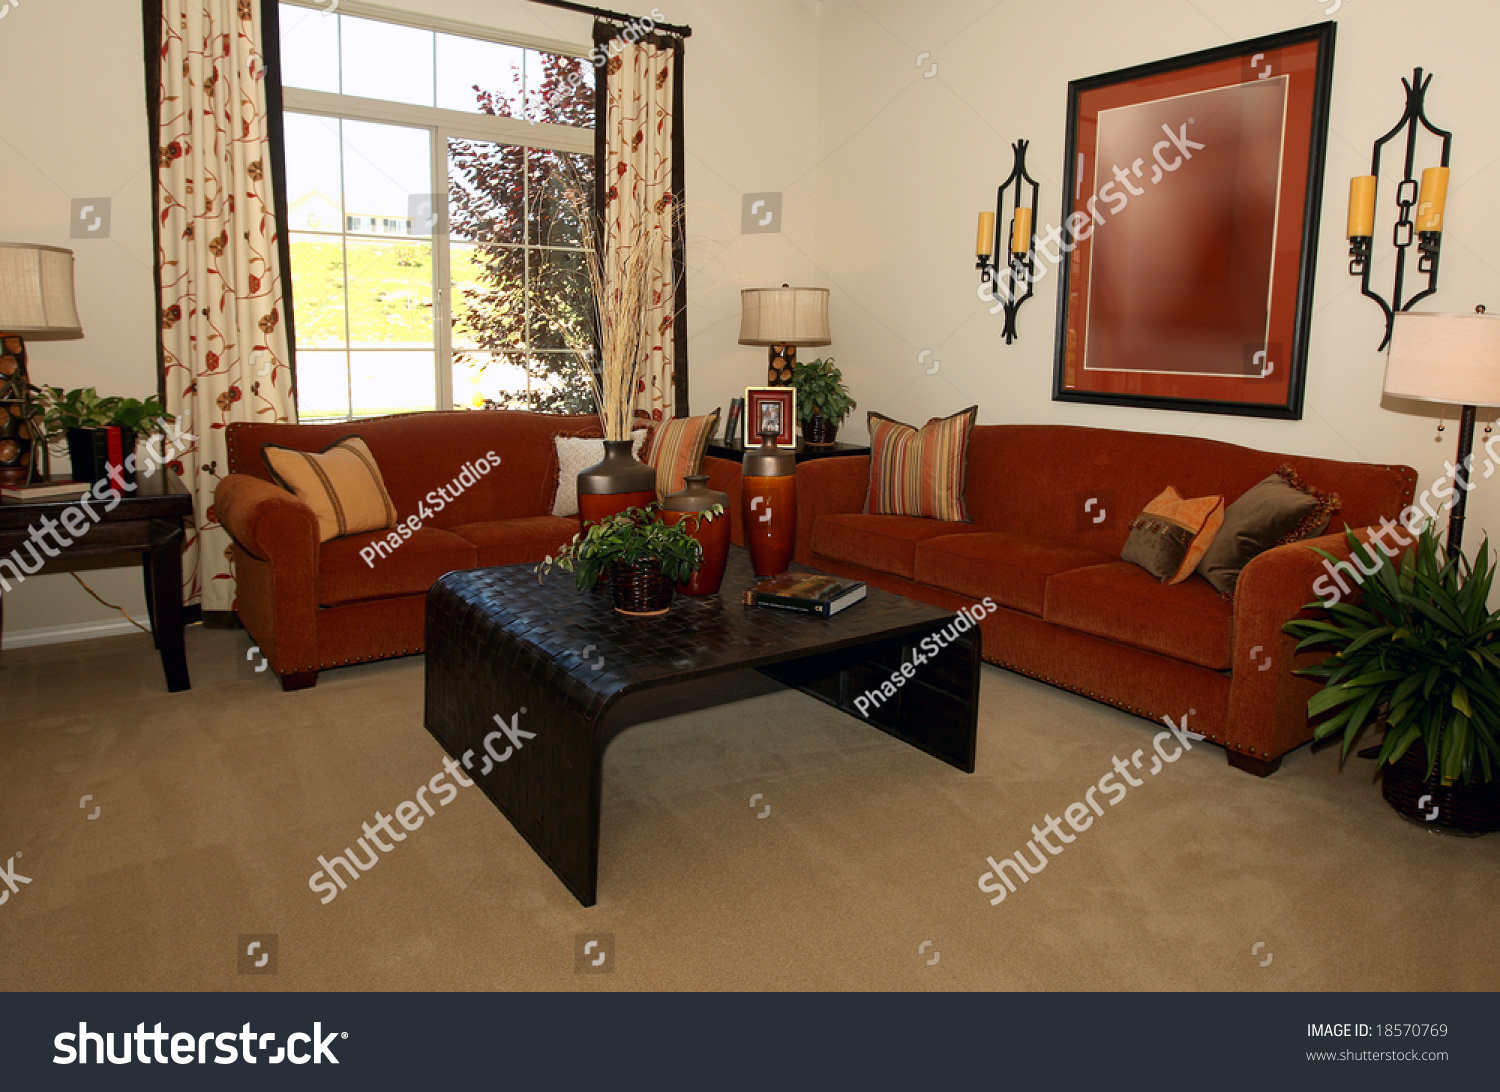 Modern Comfortable Living Room In Warm Hues Stock Photo 18570769 Shutterstock